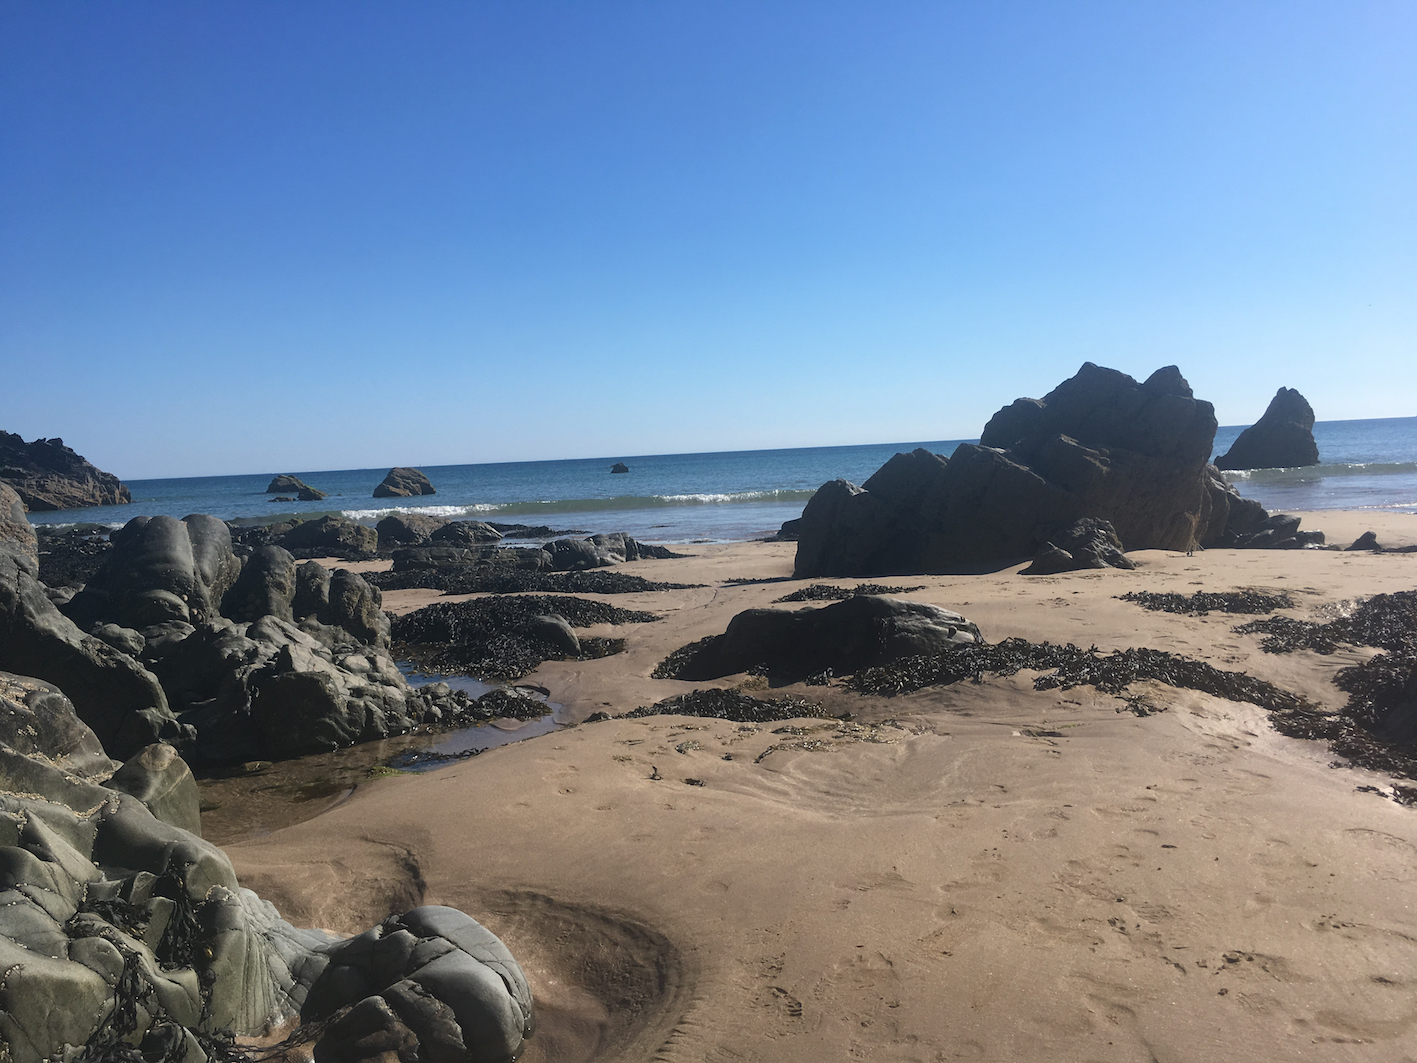 Marloes Sands Beach, Wales